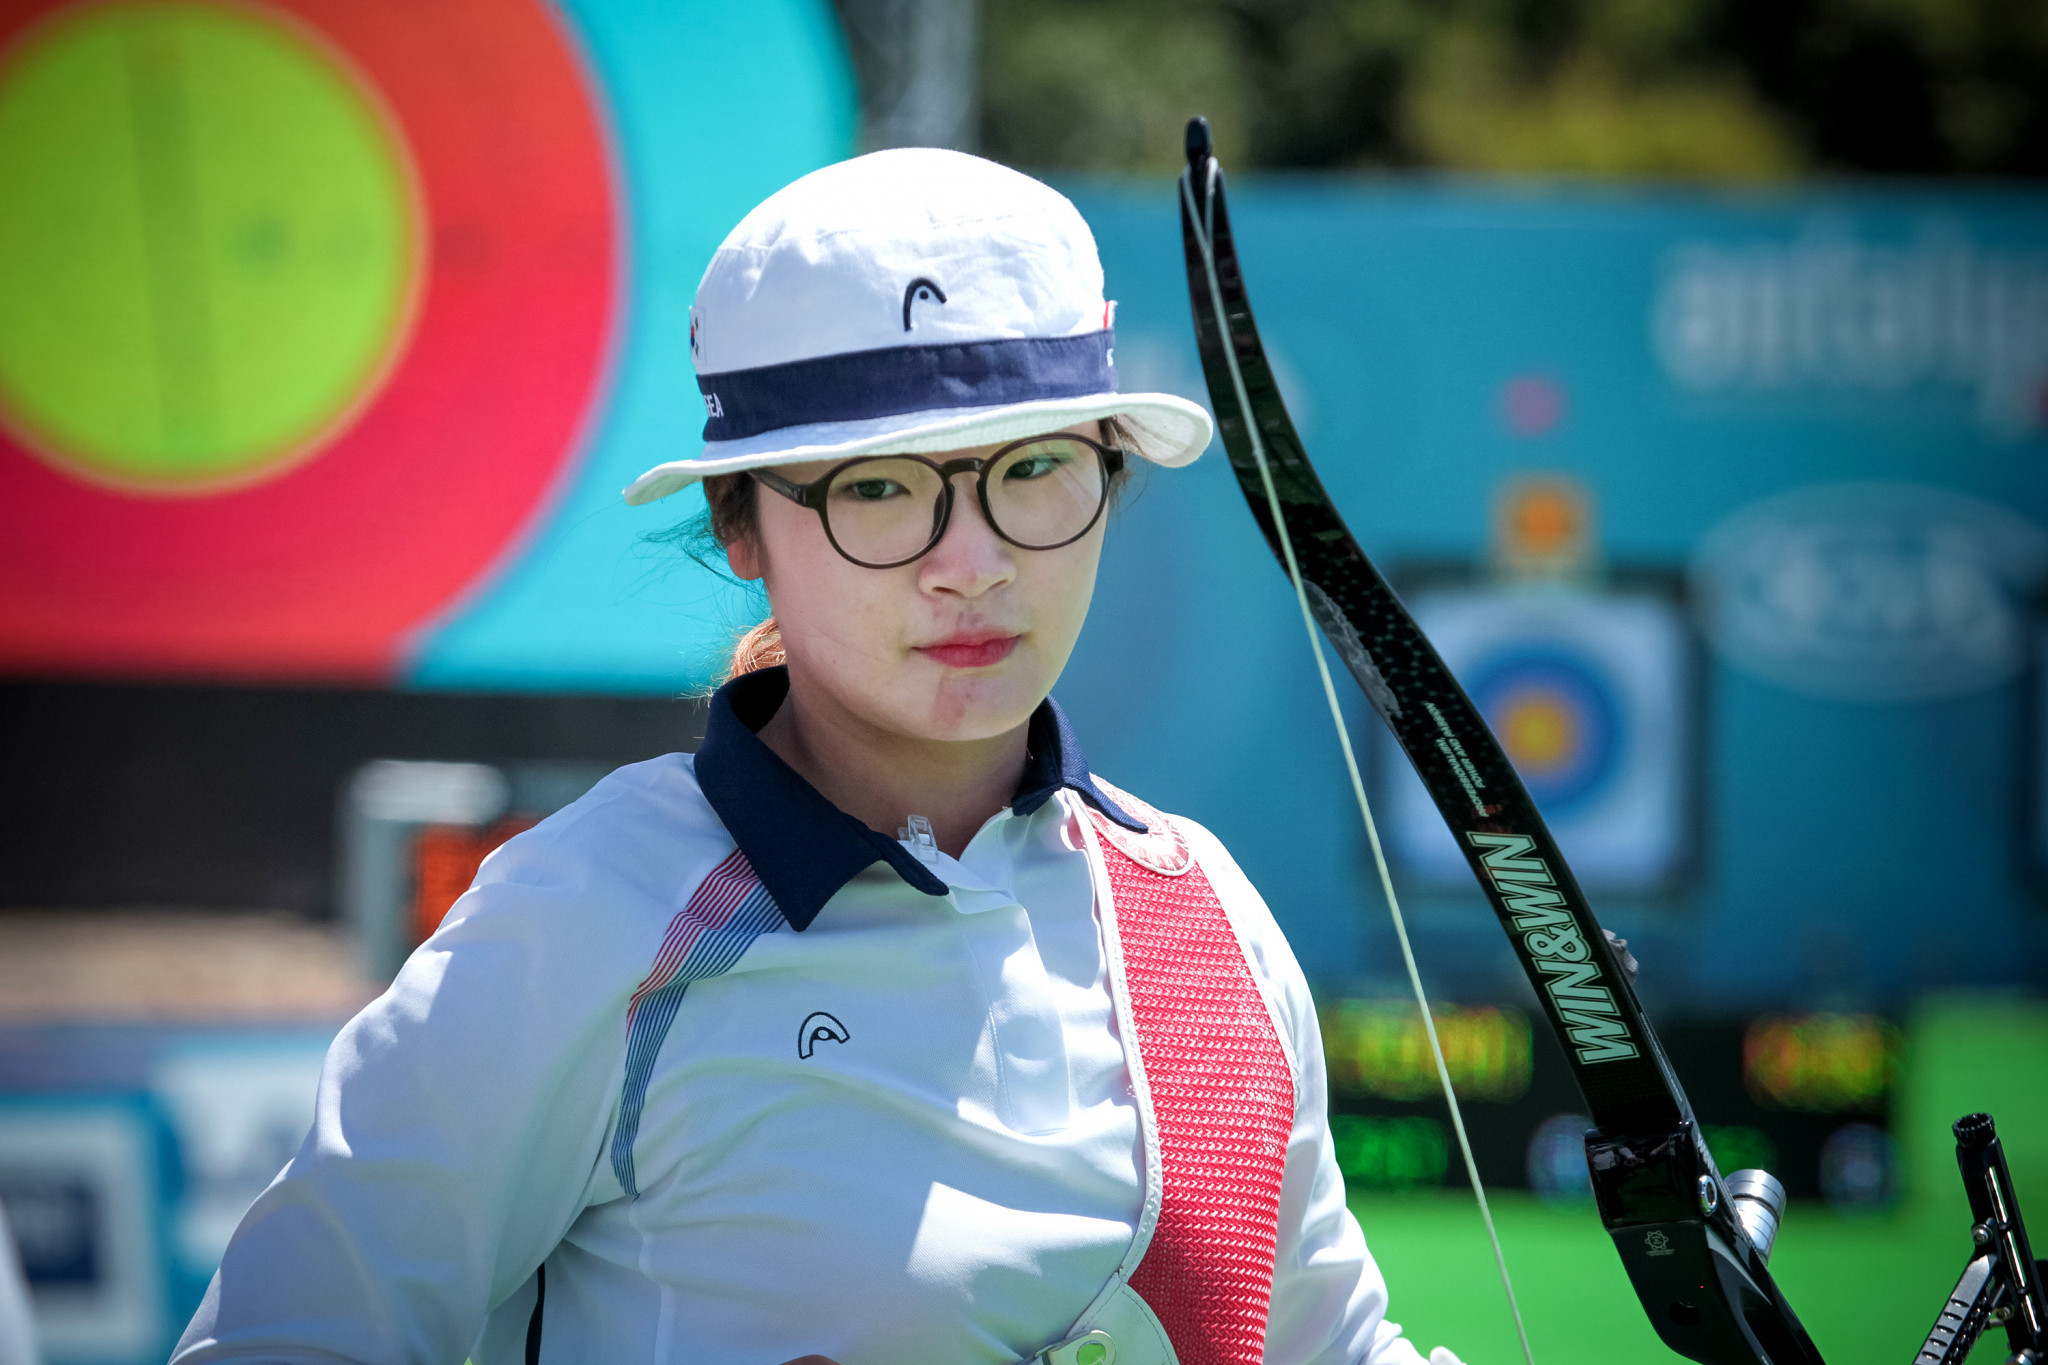 South Korea dominate women's recurve qualification at World Archery Championships